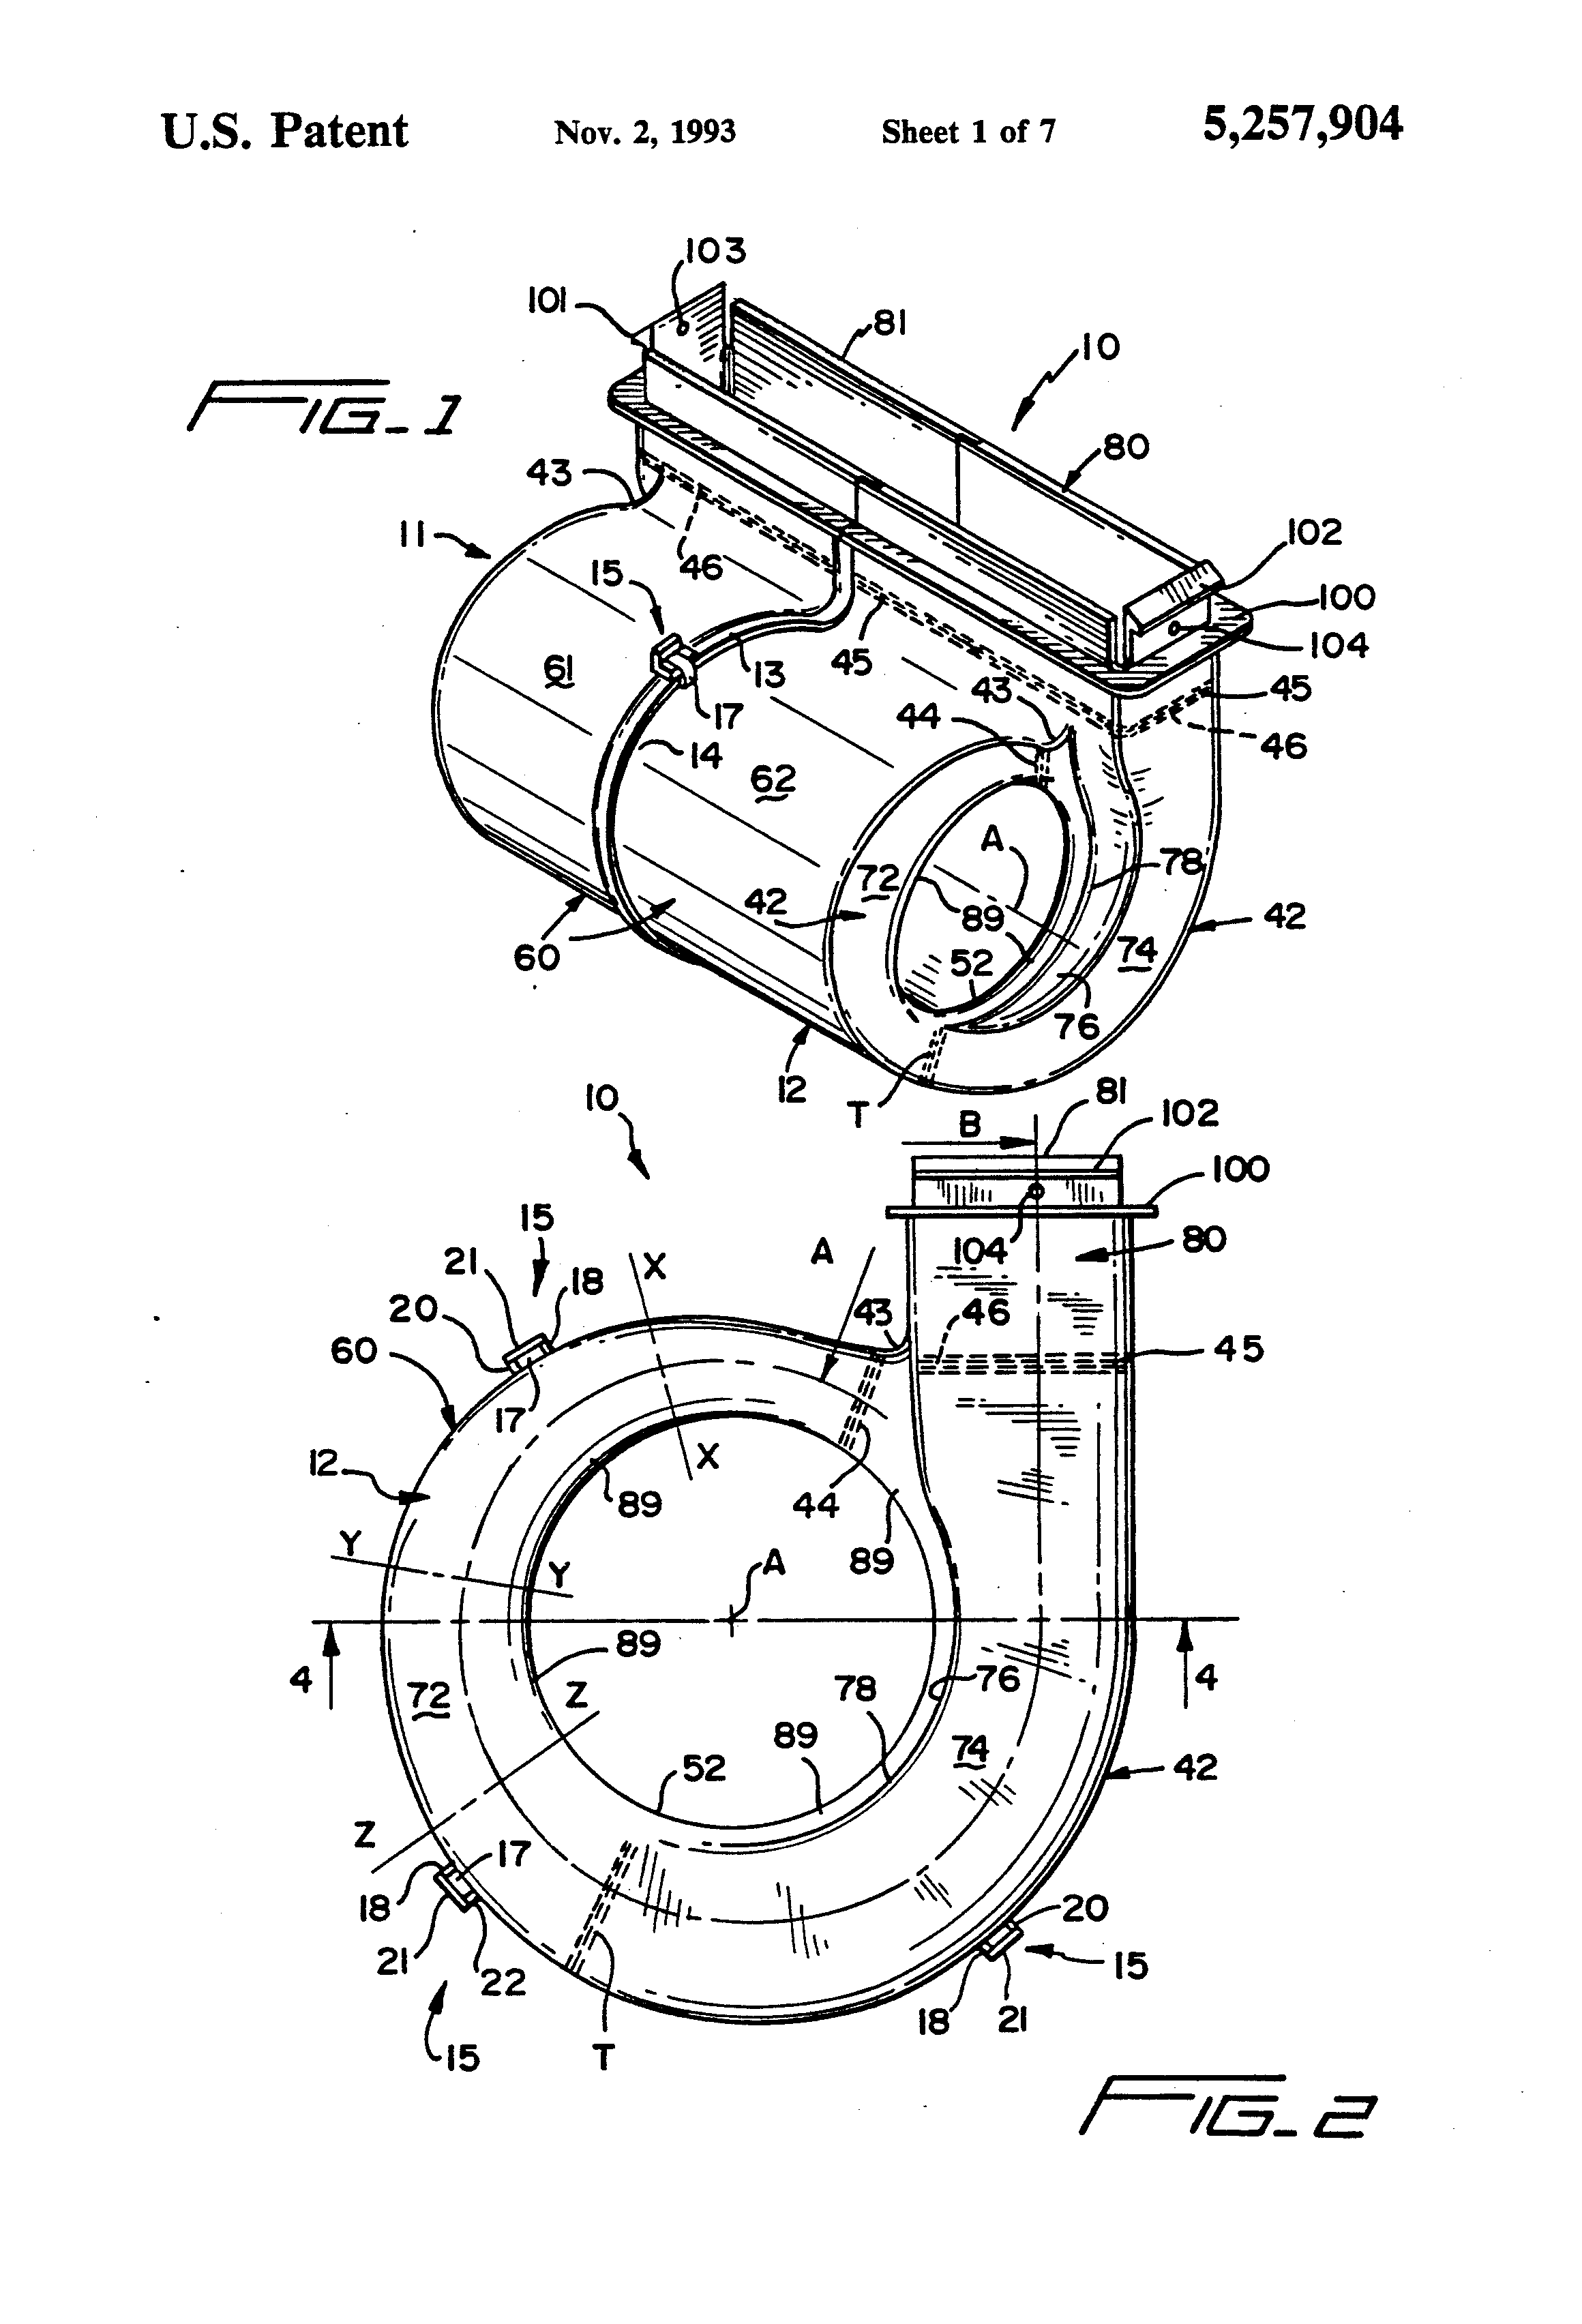 housing for a centrifugal fan blower or the like   Patents #383838